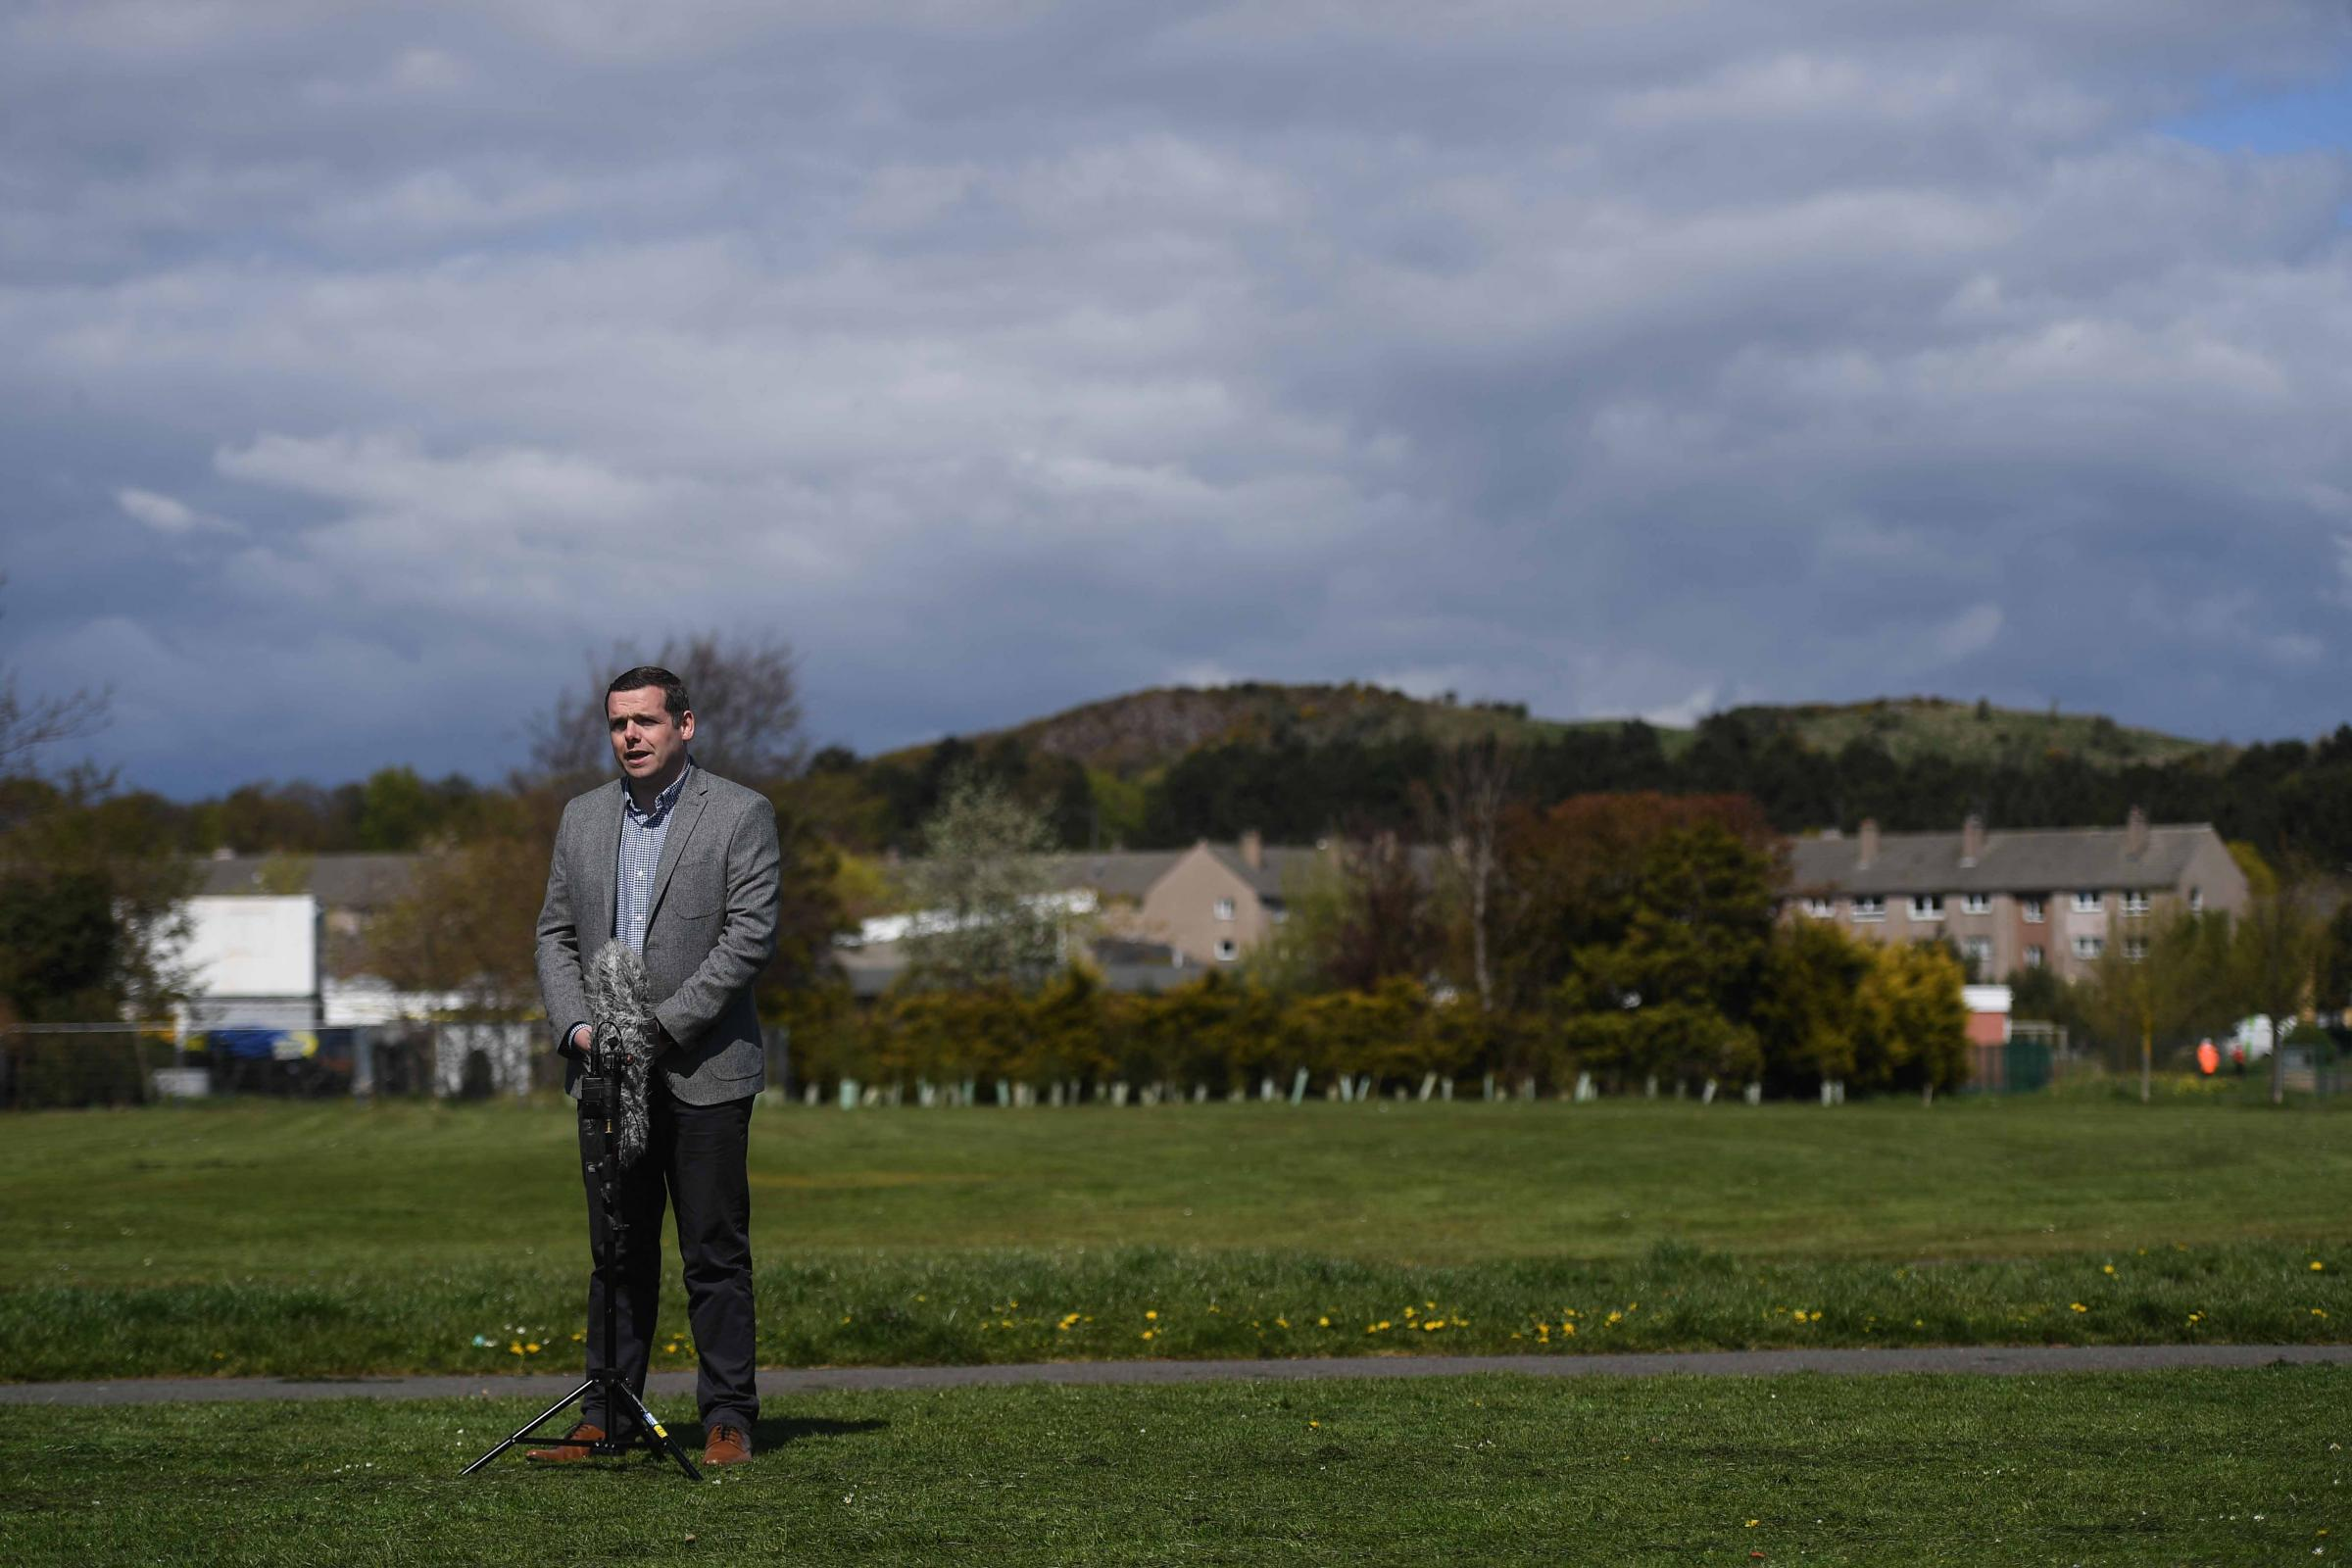 Lesley Riddoch: Unionism's decline shown clearly in hapless Douglas Ross